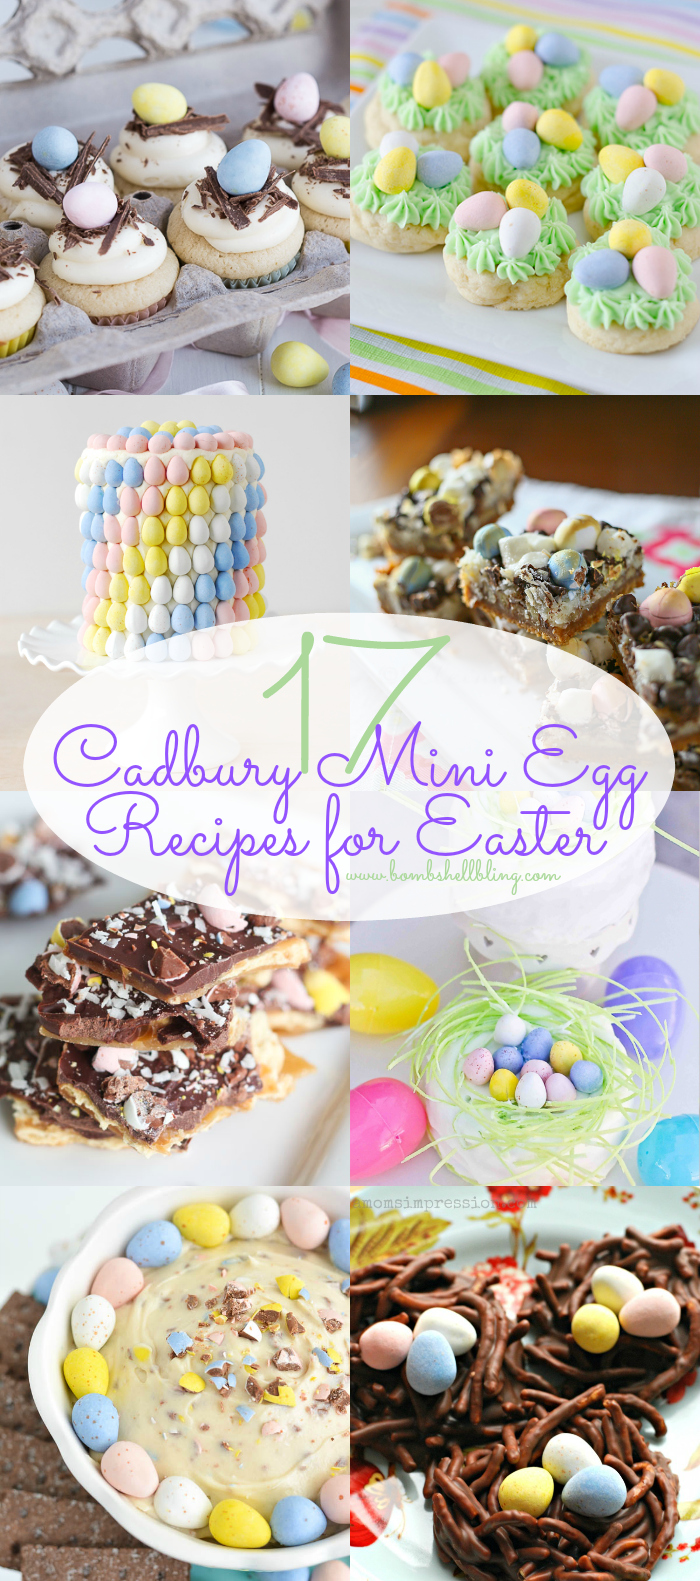 17 Delicious Cadbury Mini Egg Recipes for Easter